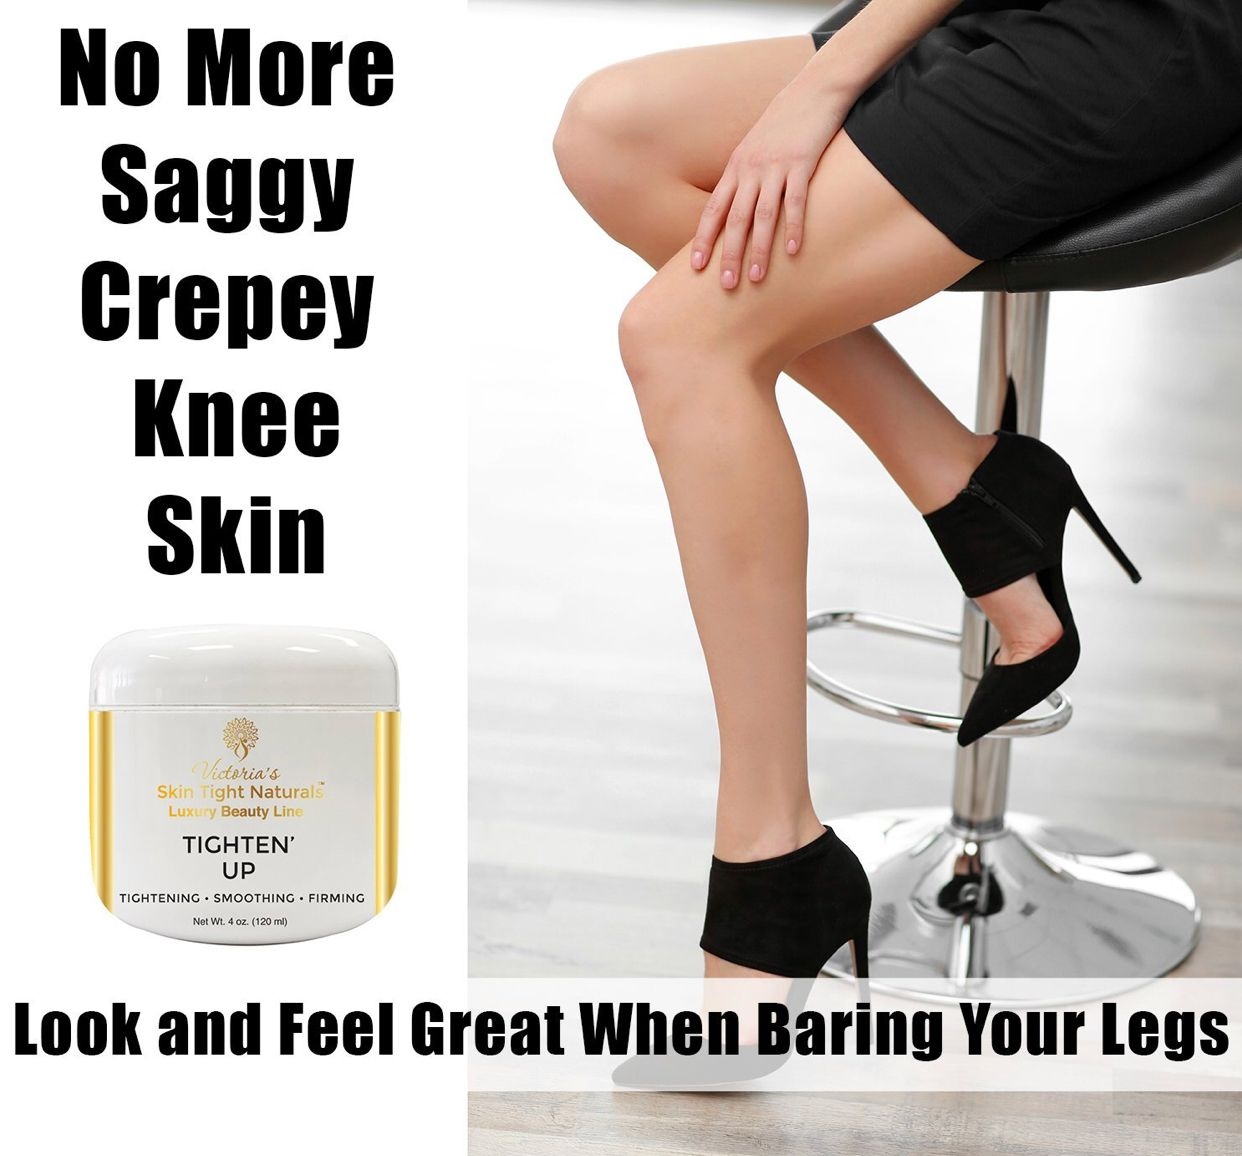 08a05b50bb1beeddf0d3f696e1c0cdf3 - How To Get Rid Of Crepey Skin On Knees